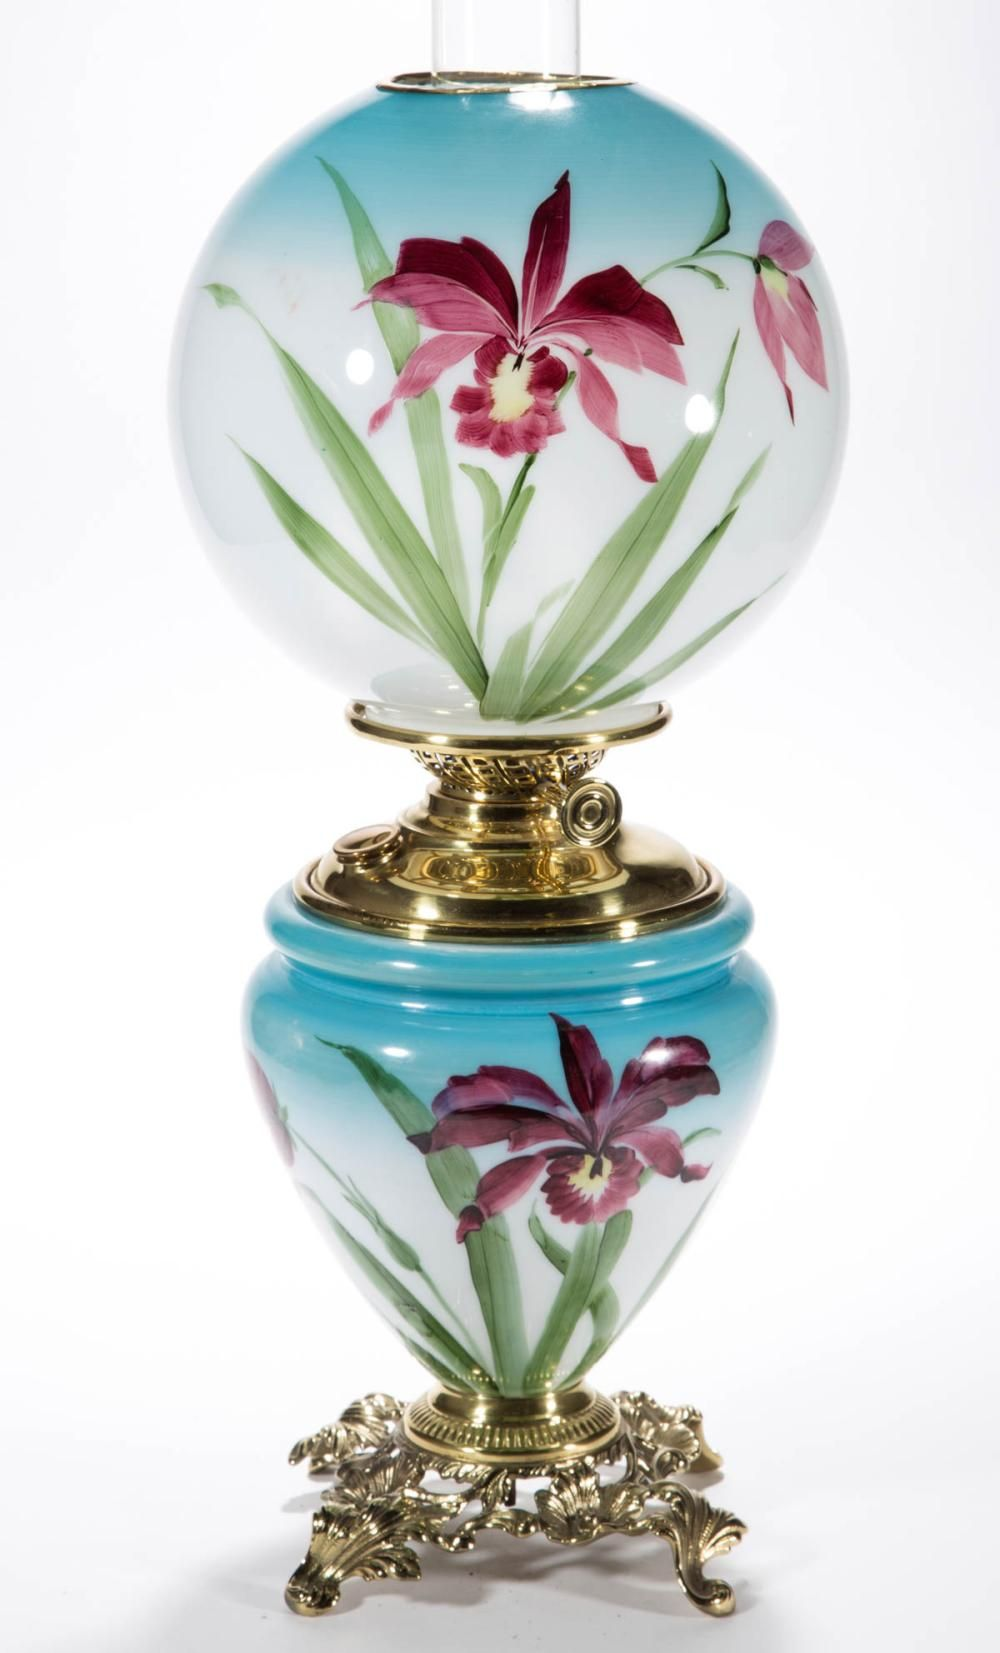 Sold Price Victorian Enamel Decorated Parlor Gone With The Wind Lamp July 5 0118 9 30 Am Edt Glass Jewelry Box Gone With The Wind Lamps Lamp